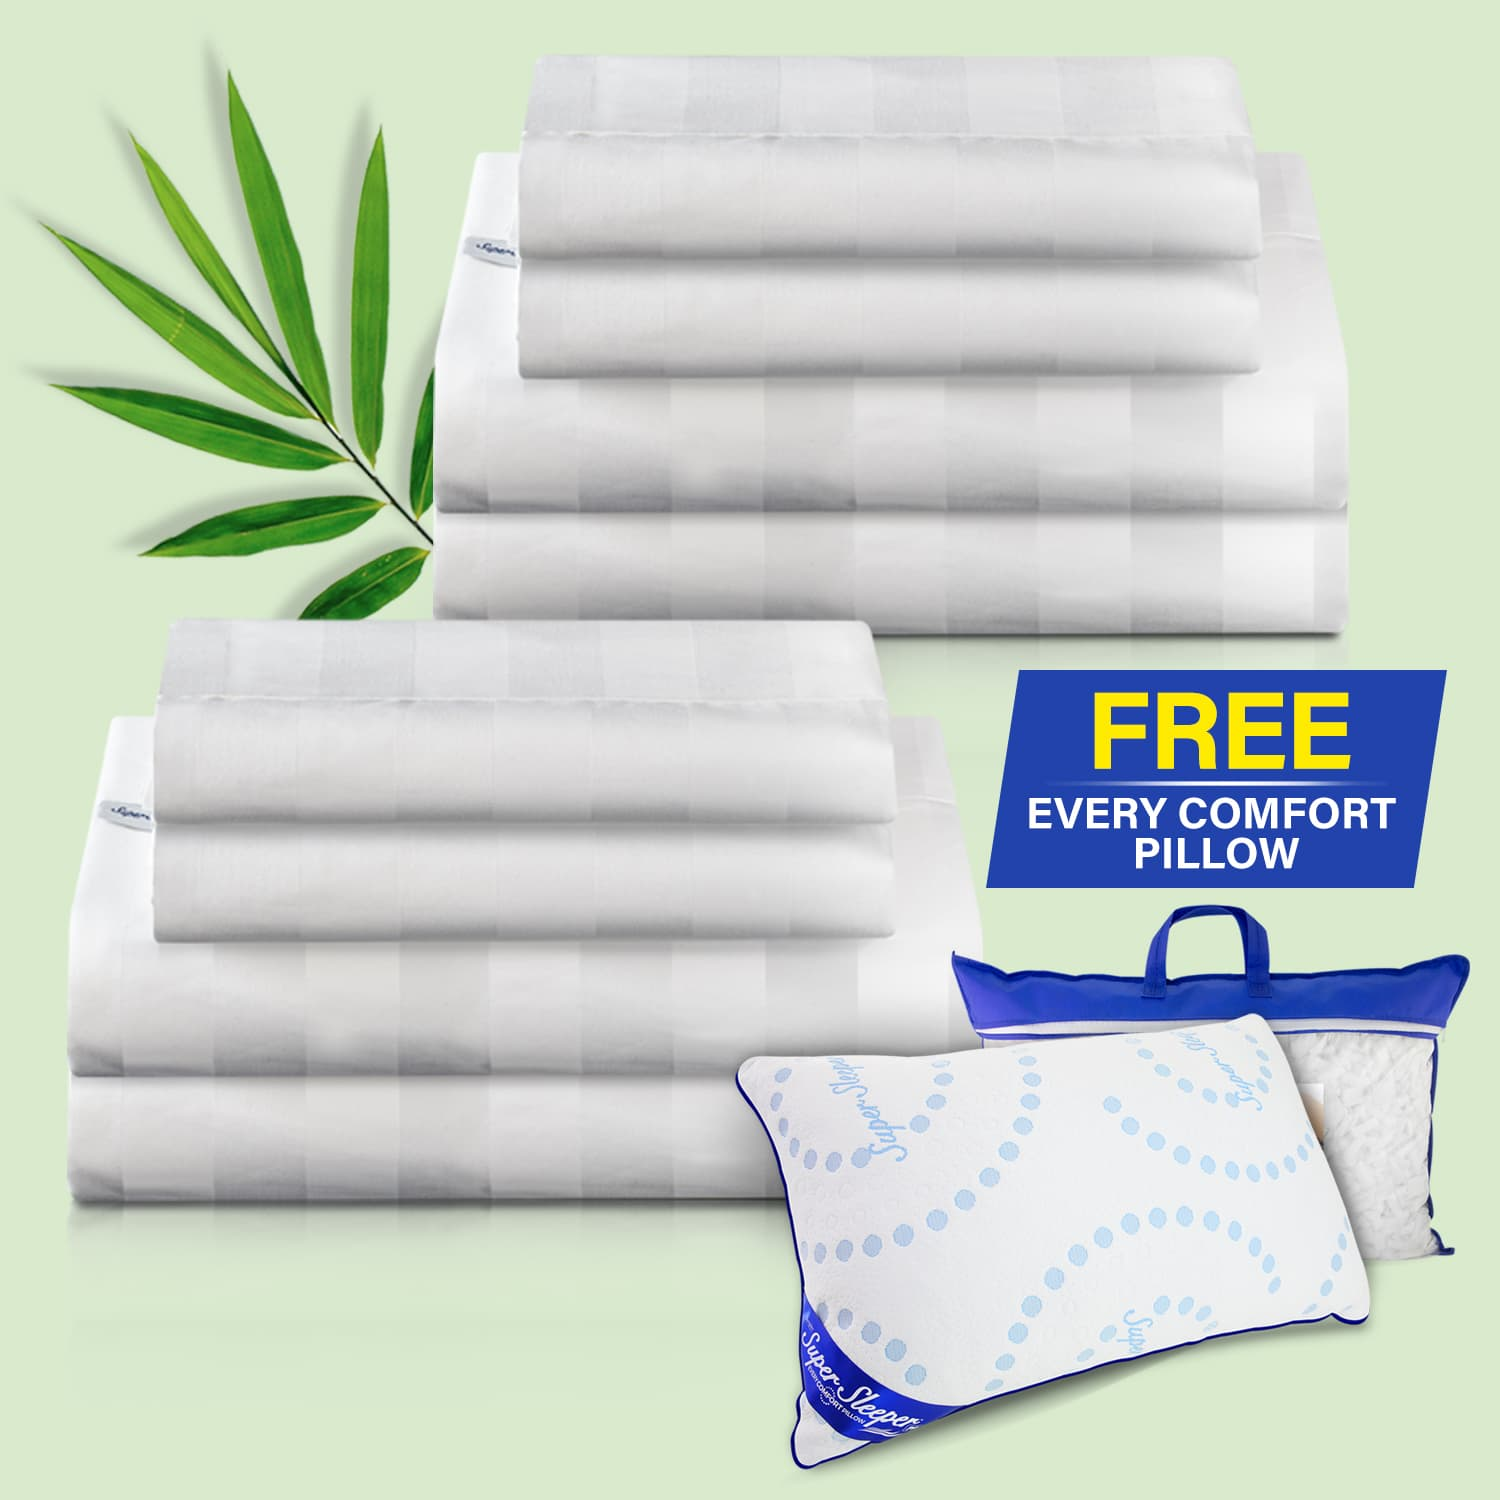 Two Royal Deluxe Natural Bamboo Dream Sheet Sets folded with an Every Comfort Pillow